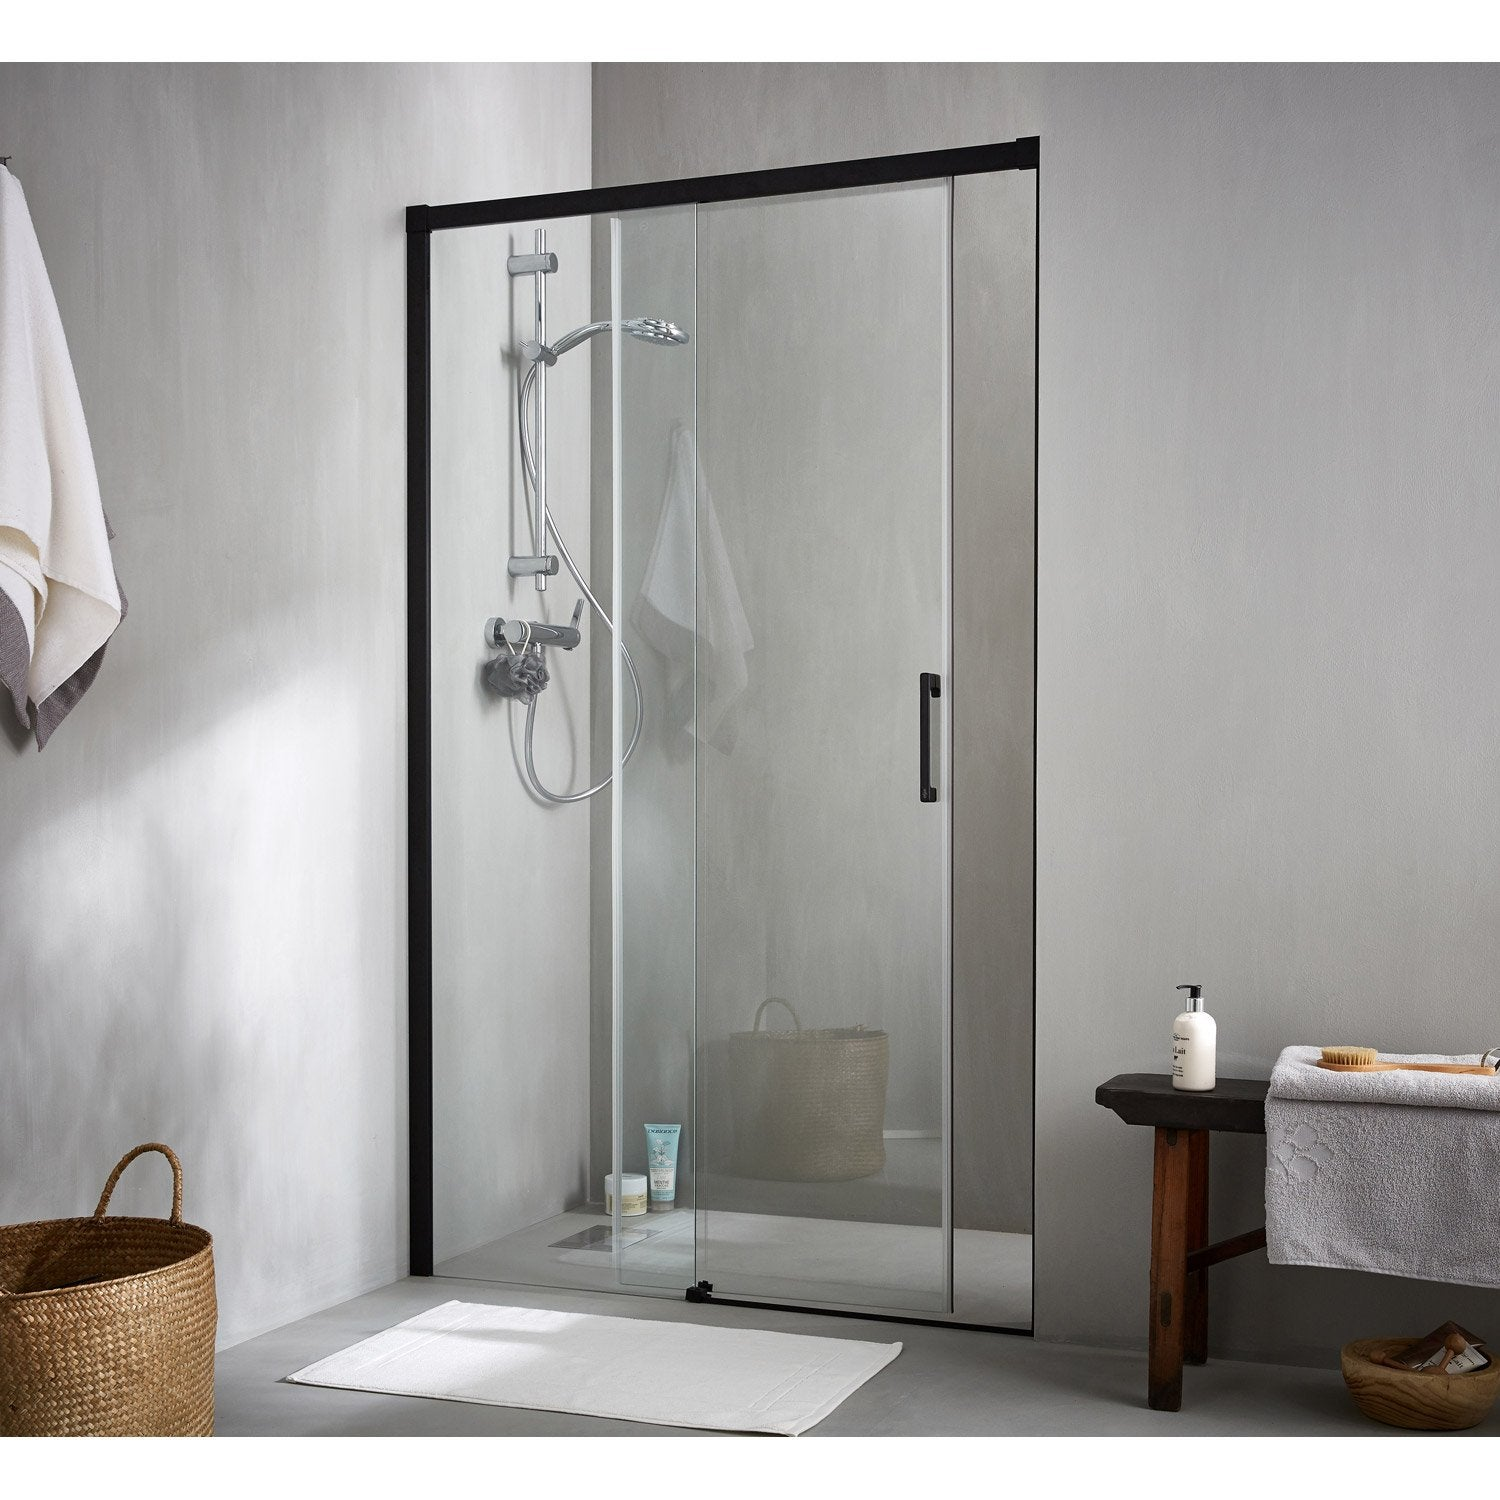 Porte de douche coulissante 120 cm transparent remix for Porte de chambre leroy merlin